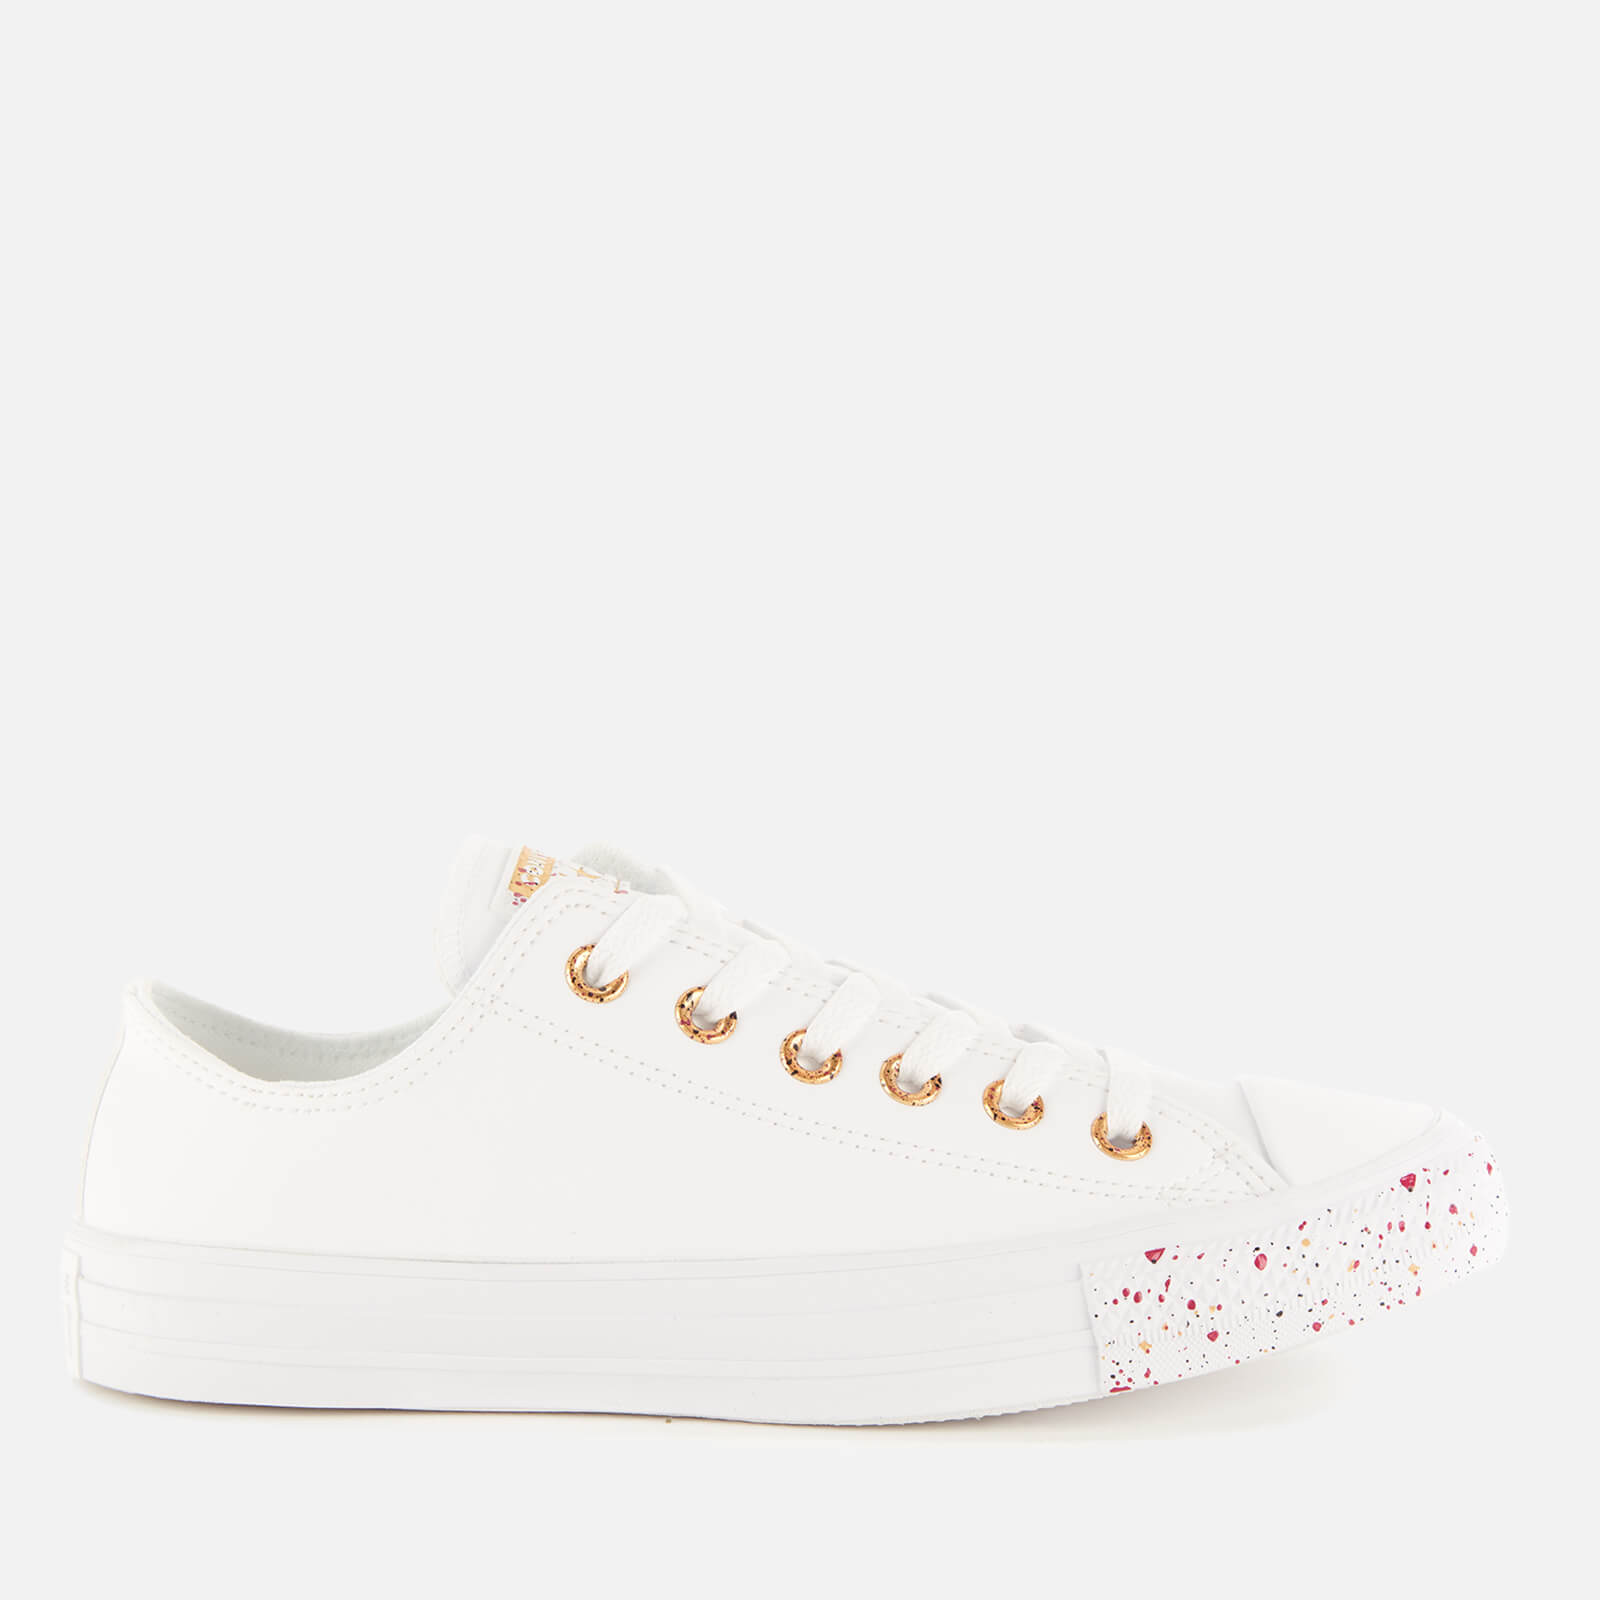 Converse Chuck Taylor All Star Speckle Trainers